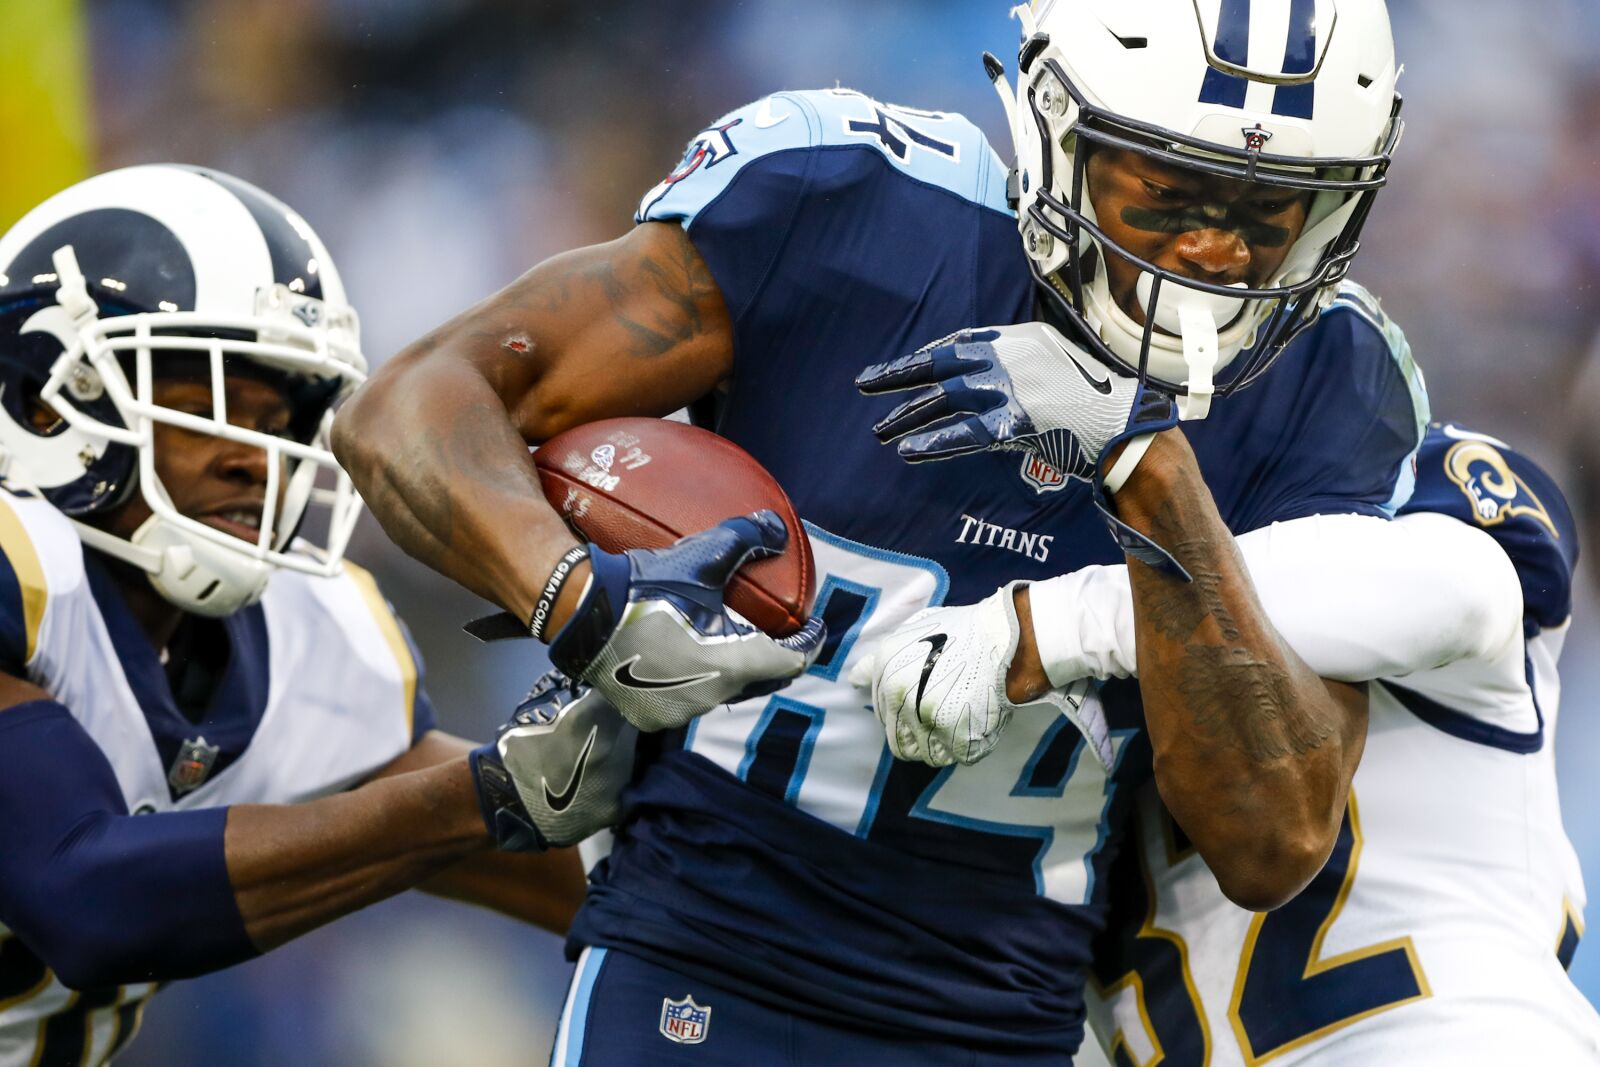 One takeaway from Tennessee Titans vs Bucs practice